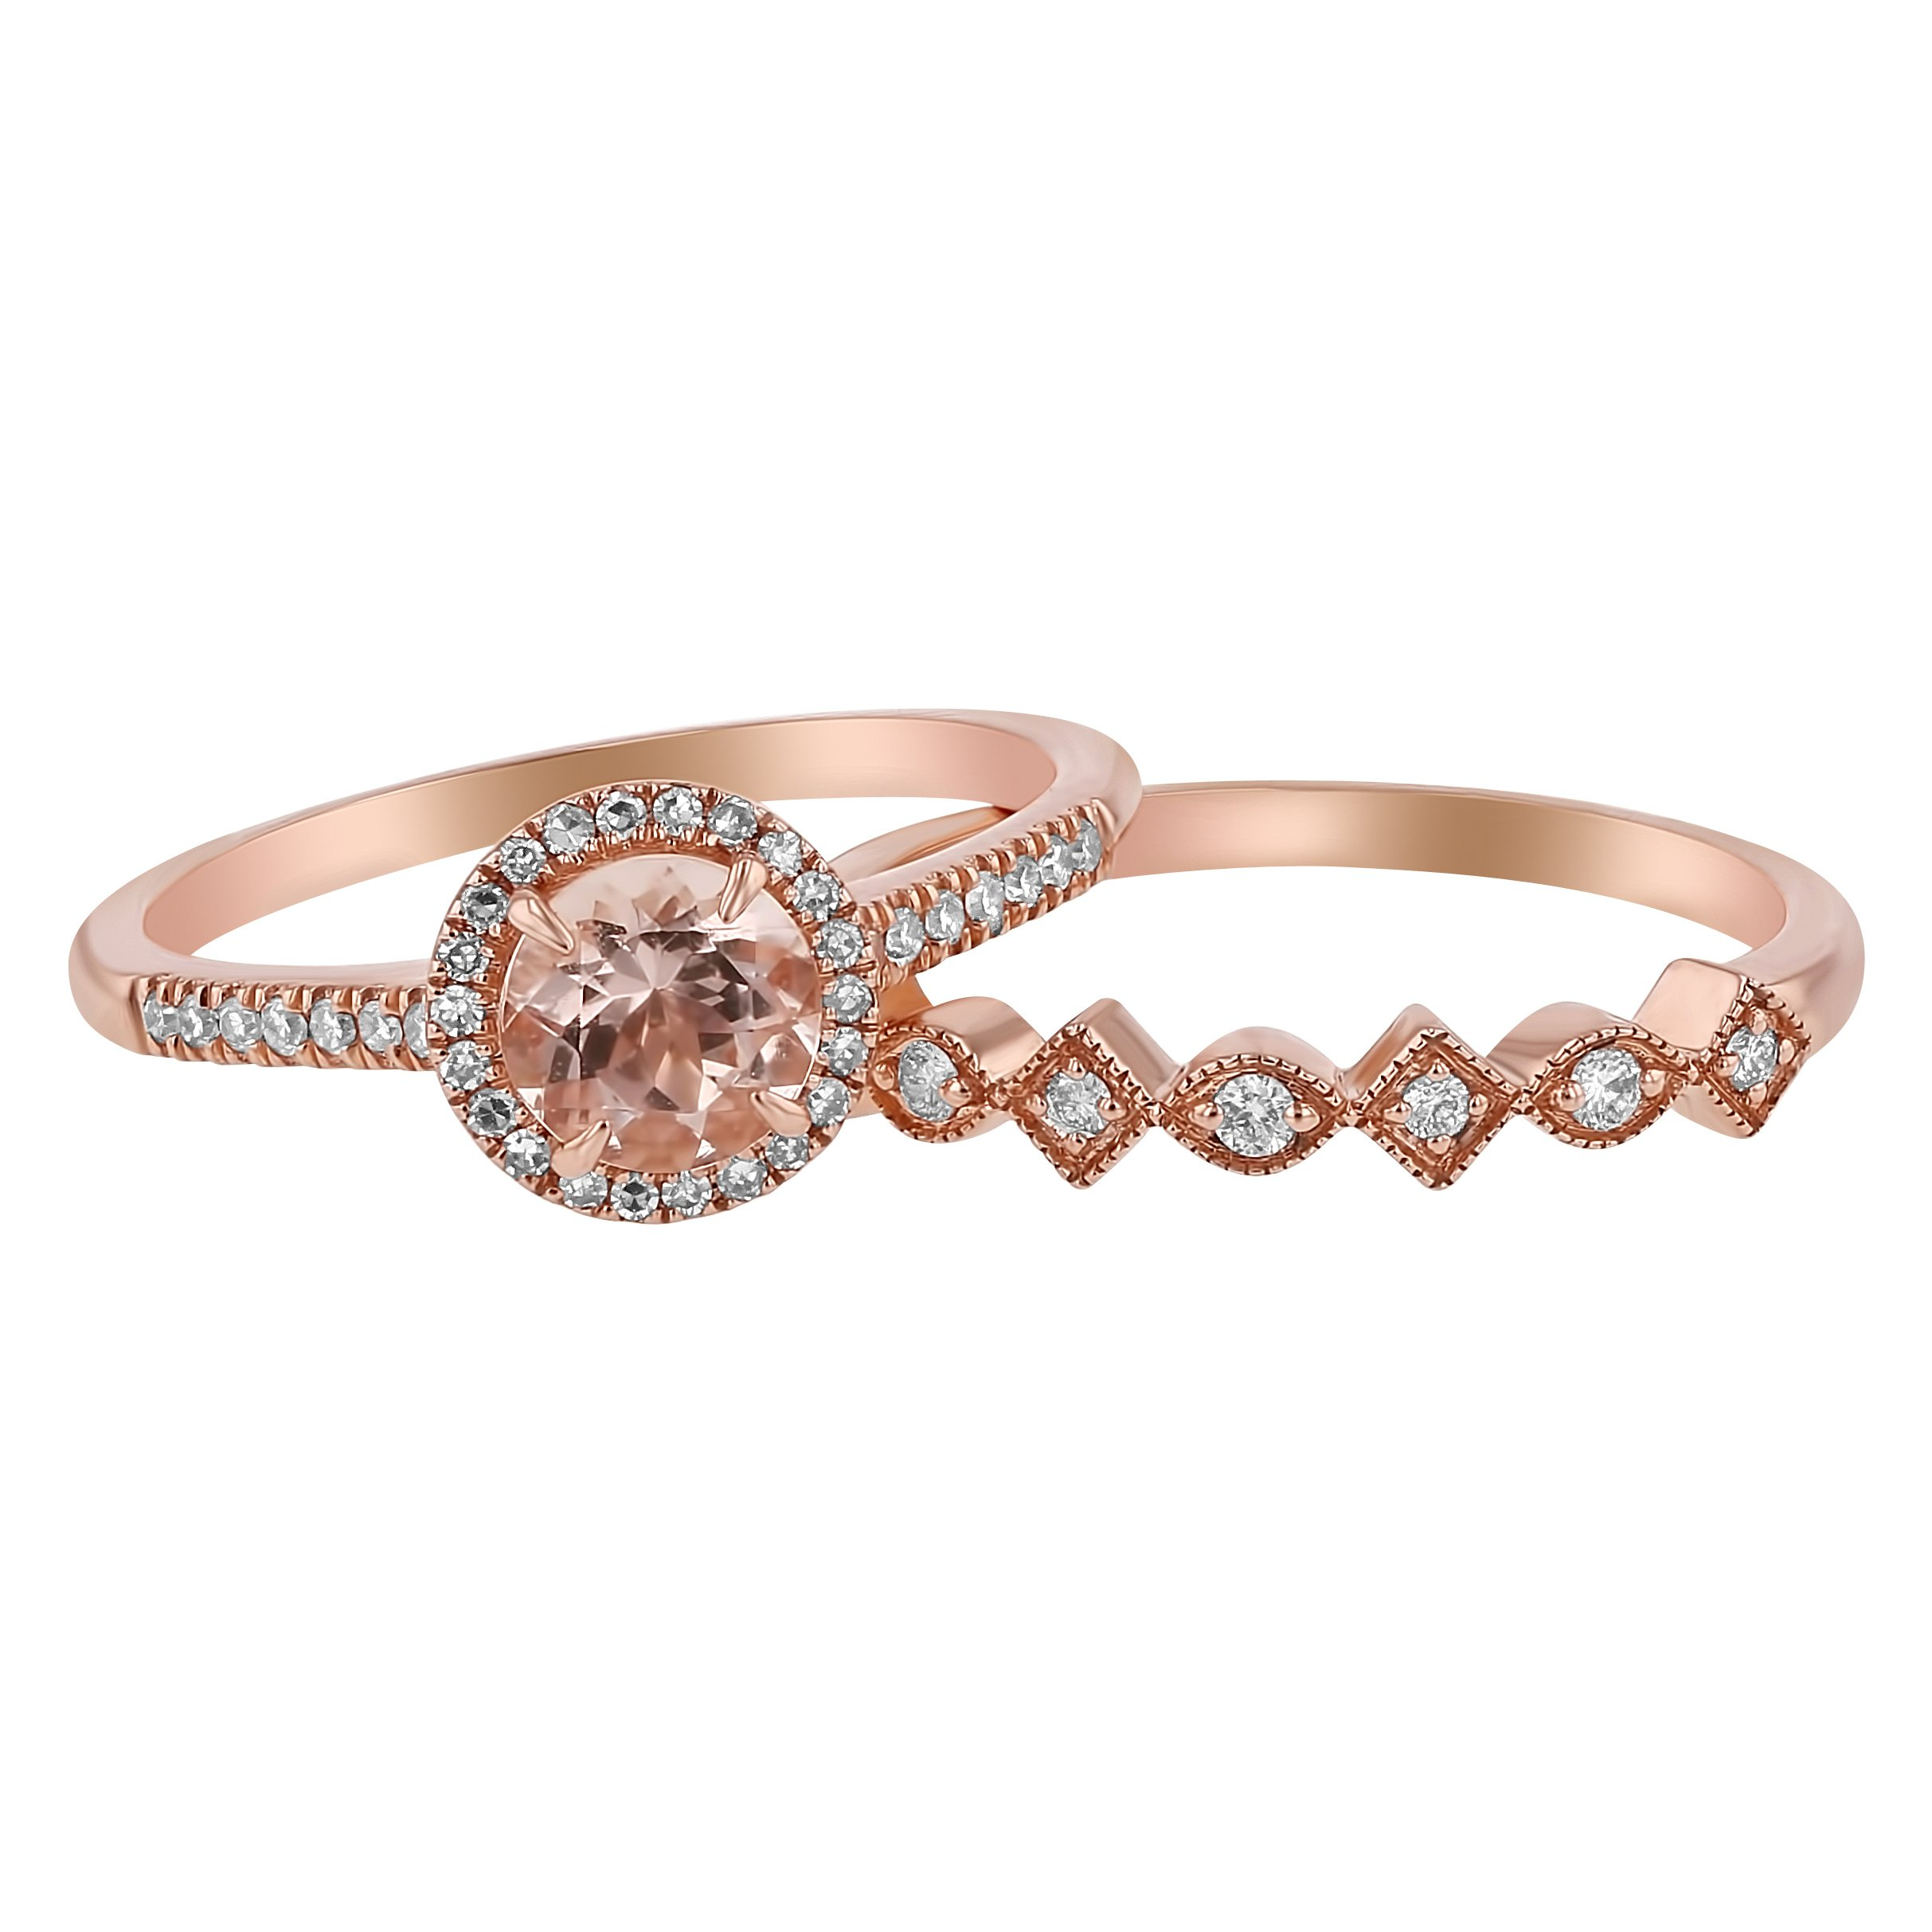 14k Rose Gold Round Morganite and Diamond Halo Vintage Wedding Band Set (1/4 cttw, H-I Color, I1 Clarity) Size 7